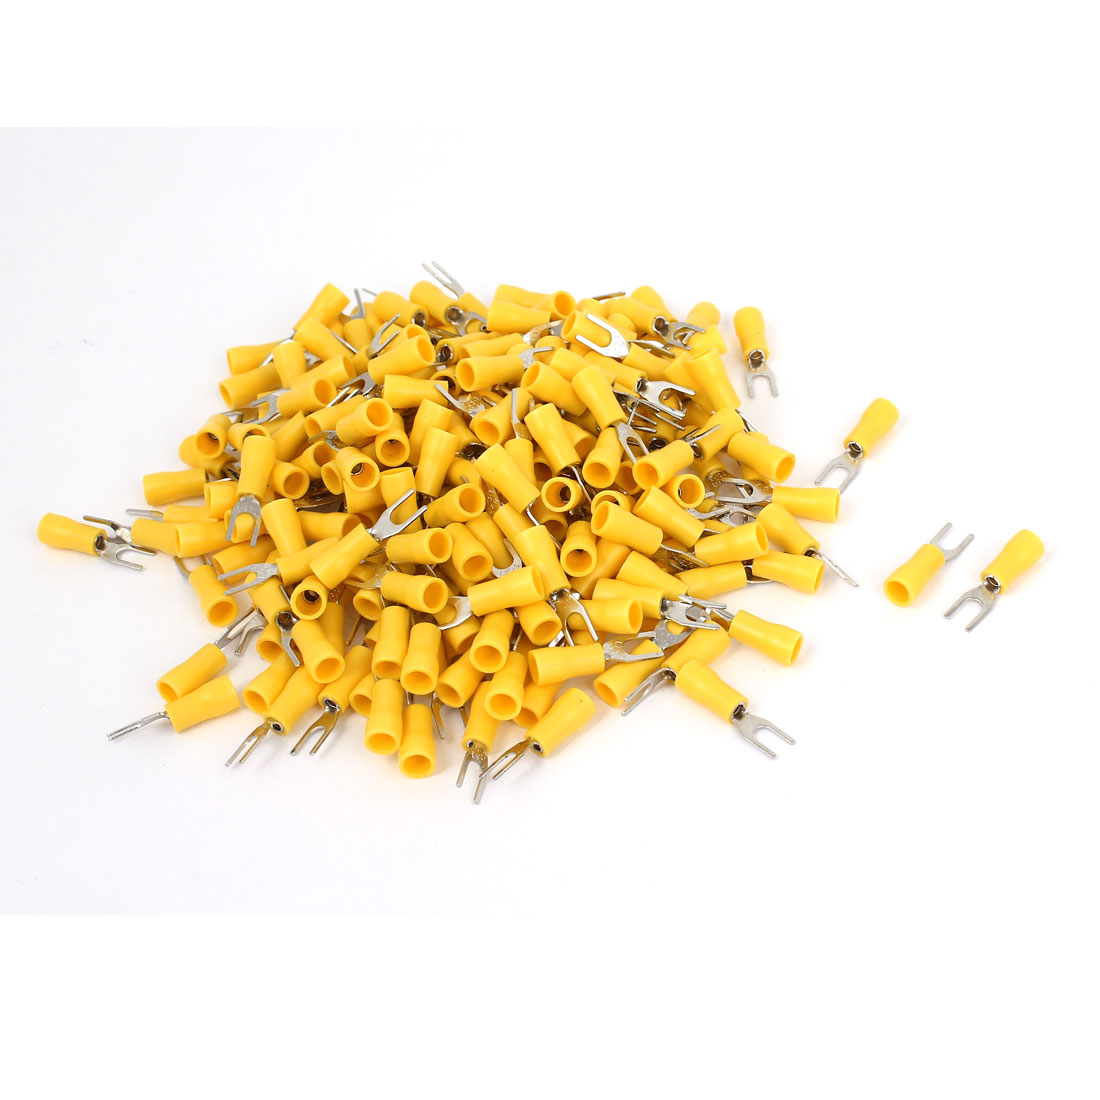 340 Pcs Yellow 4# AWG 22-16 SV1.25-3 19A Wire Connector Insulated Fork Terminals